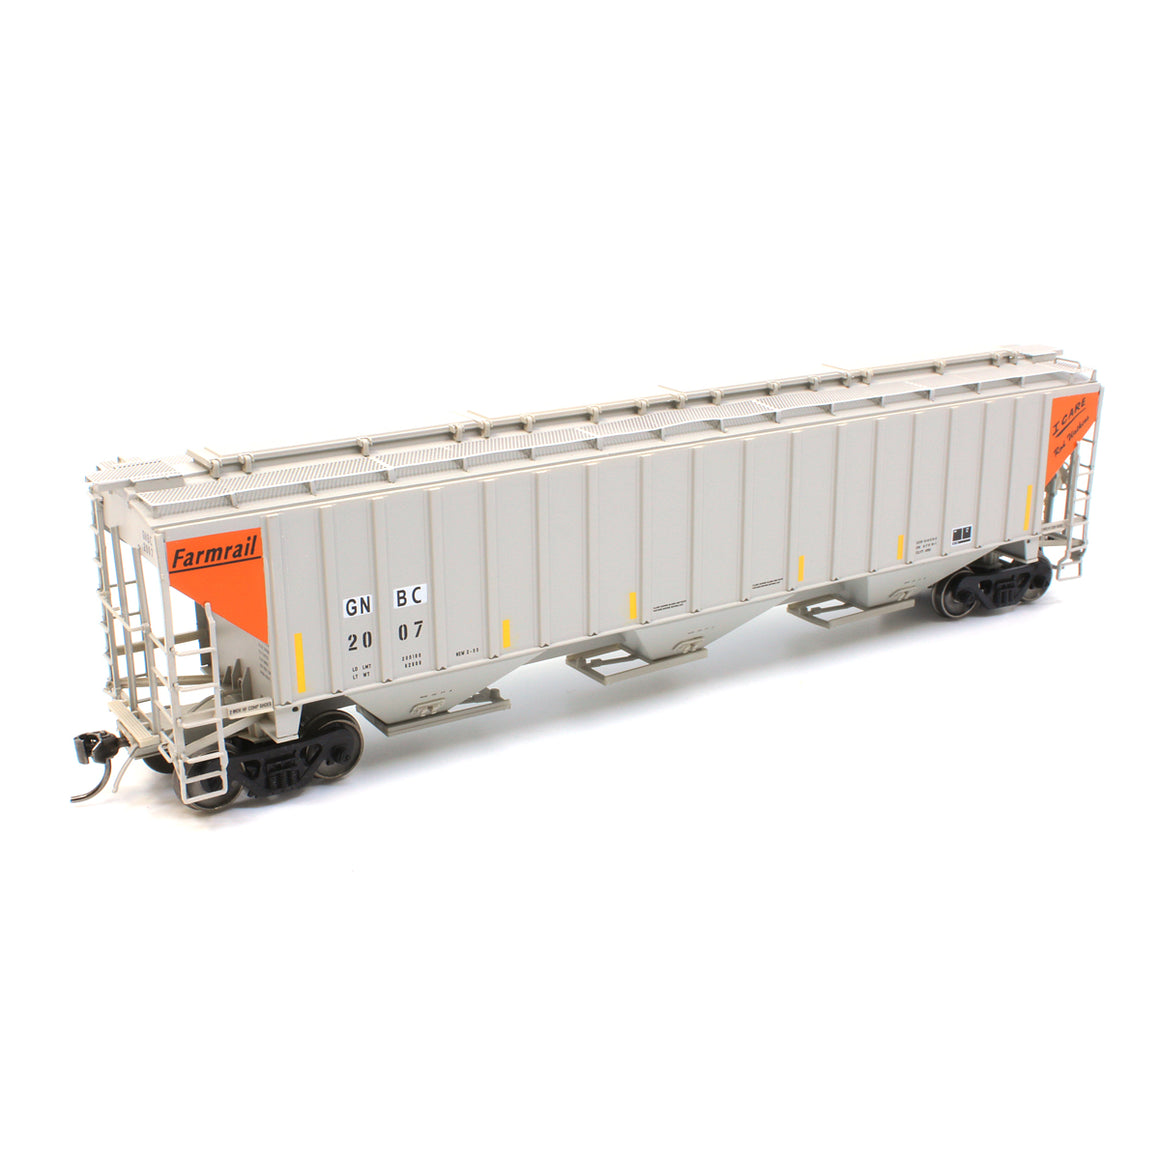 HO Scale: 4750 Cubic Foot 3-Bay Rib-Sided Covered Hopper - Farmrail 'I Care' Series